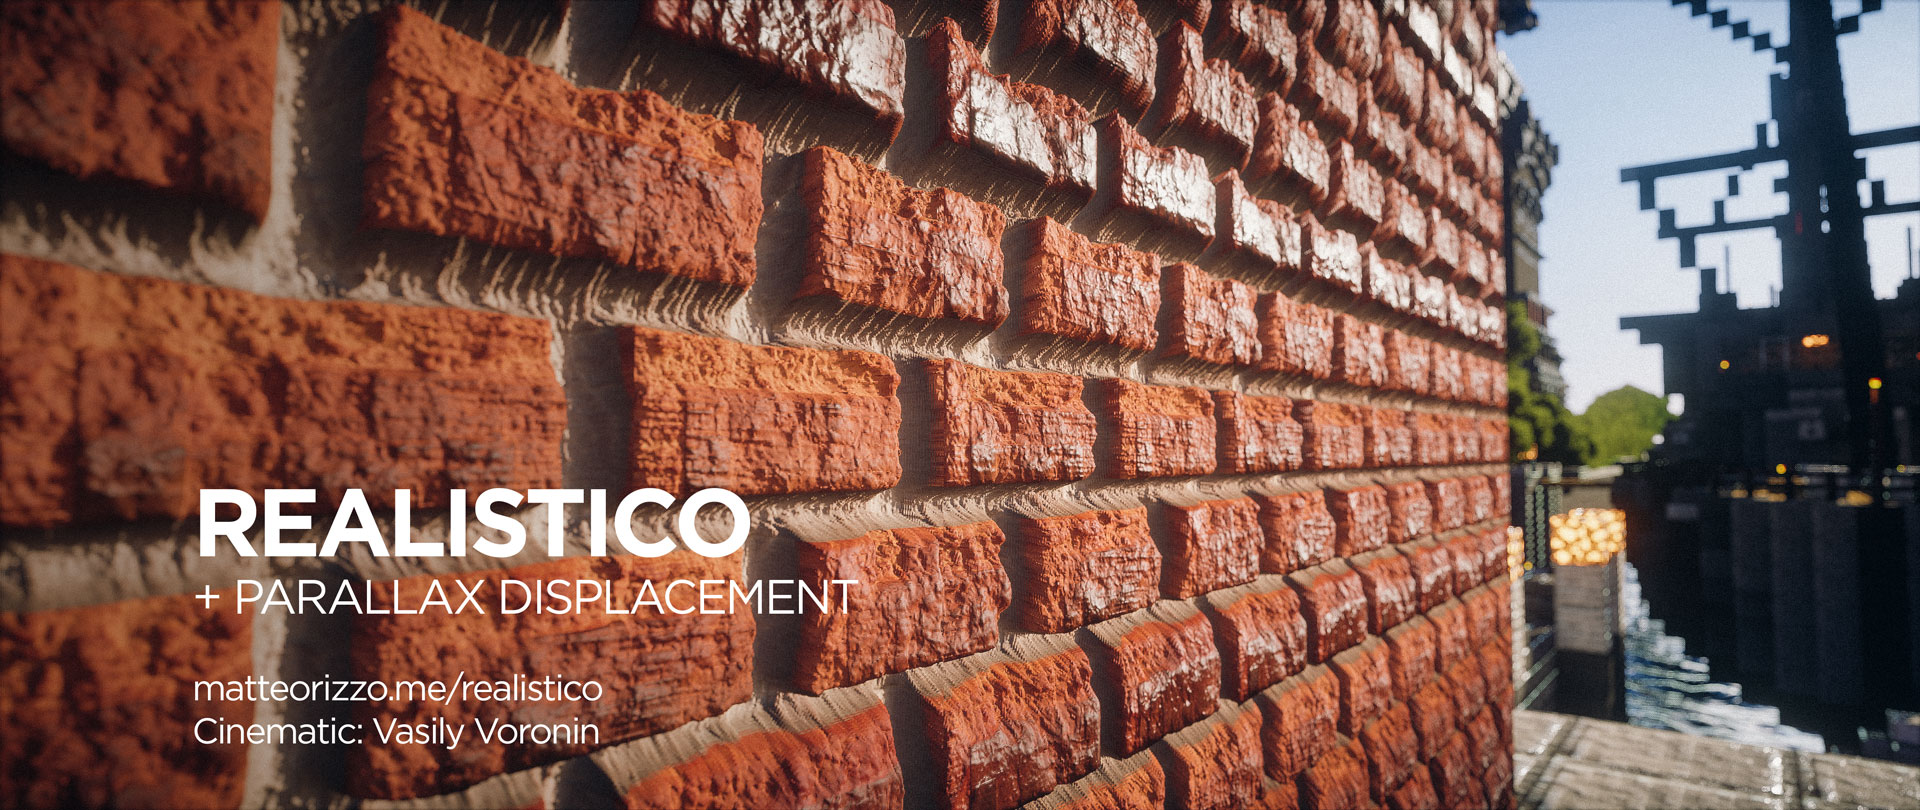 Realistico Resource Pack for Minecraft 1.12.2/1.11.2 ...